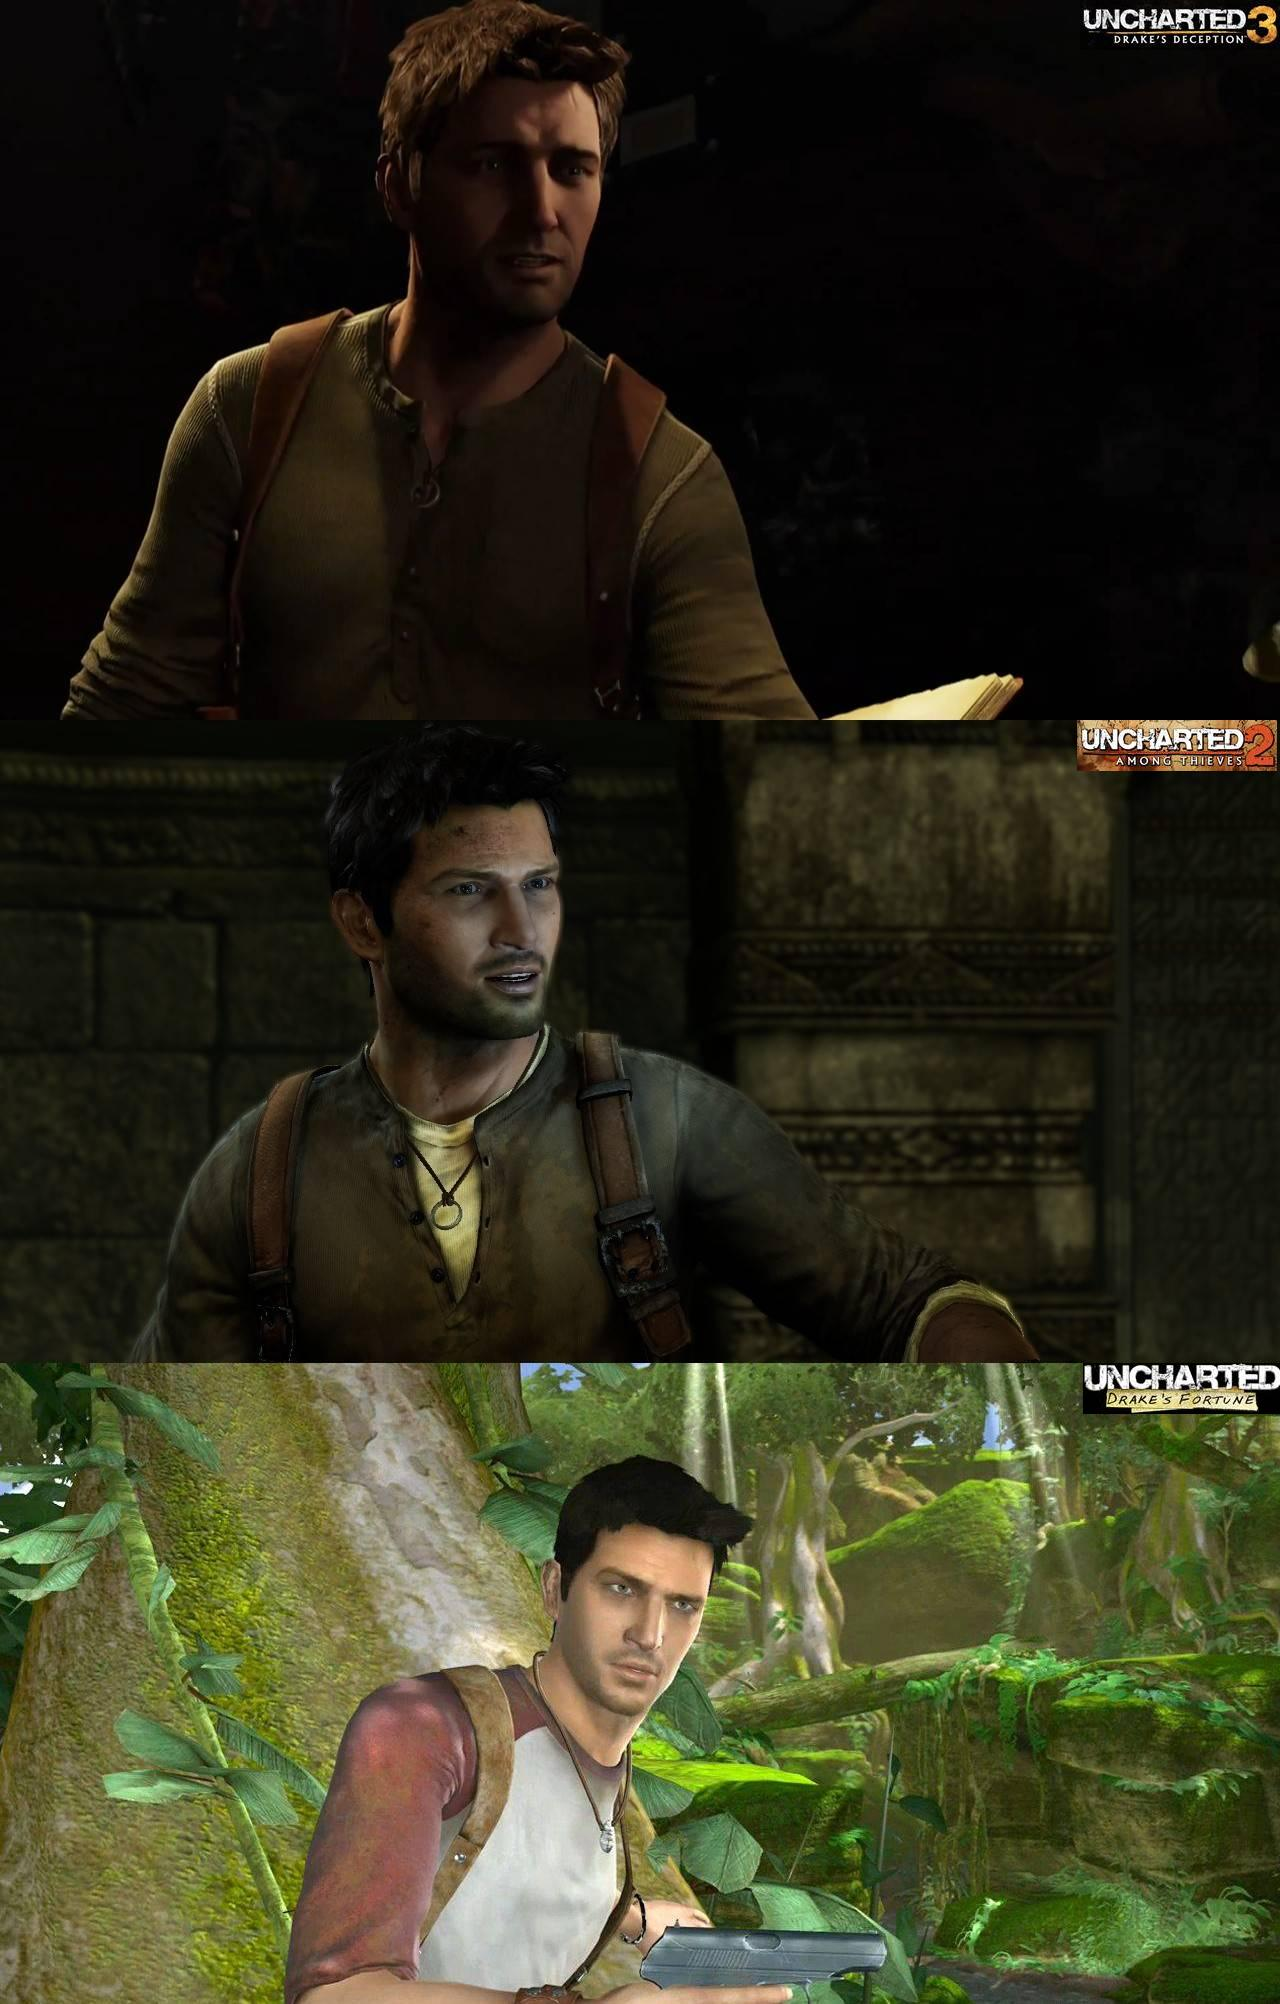 http://gamingbolt.com/wp-content/gallery/uncharted-3-latest/uncharted-3-in-game-1.jpg